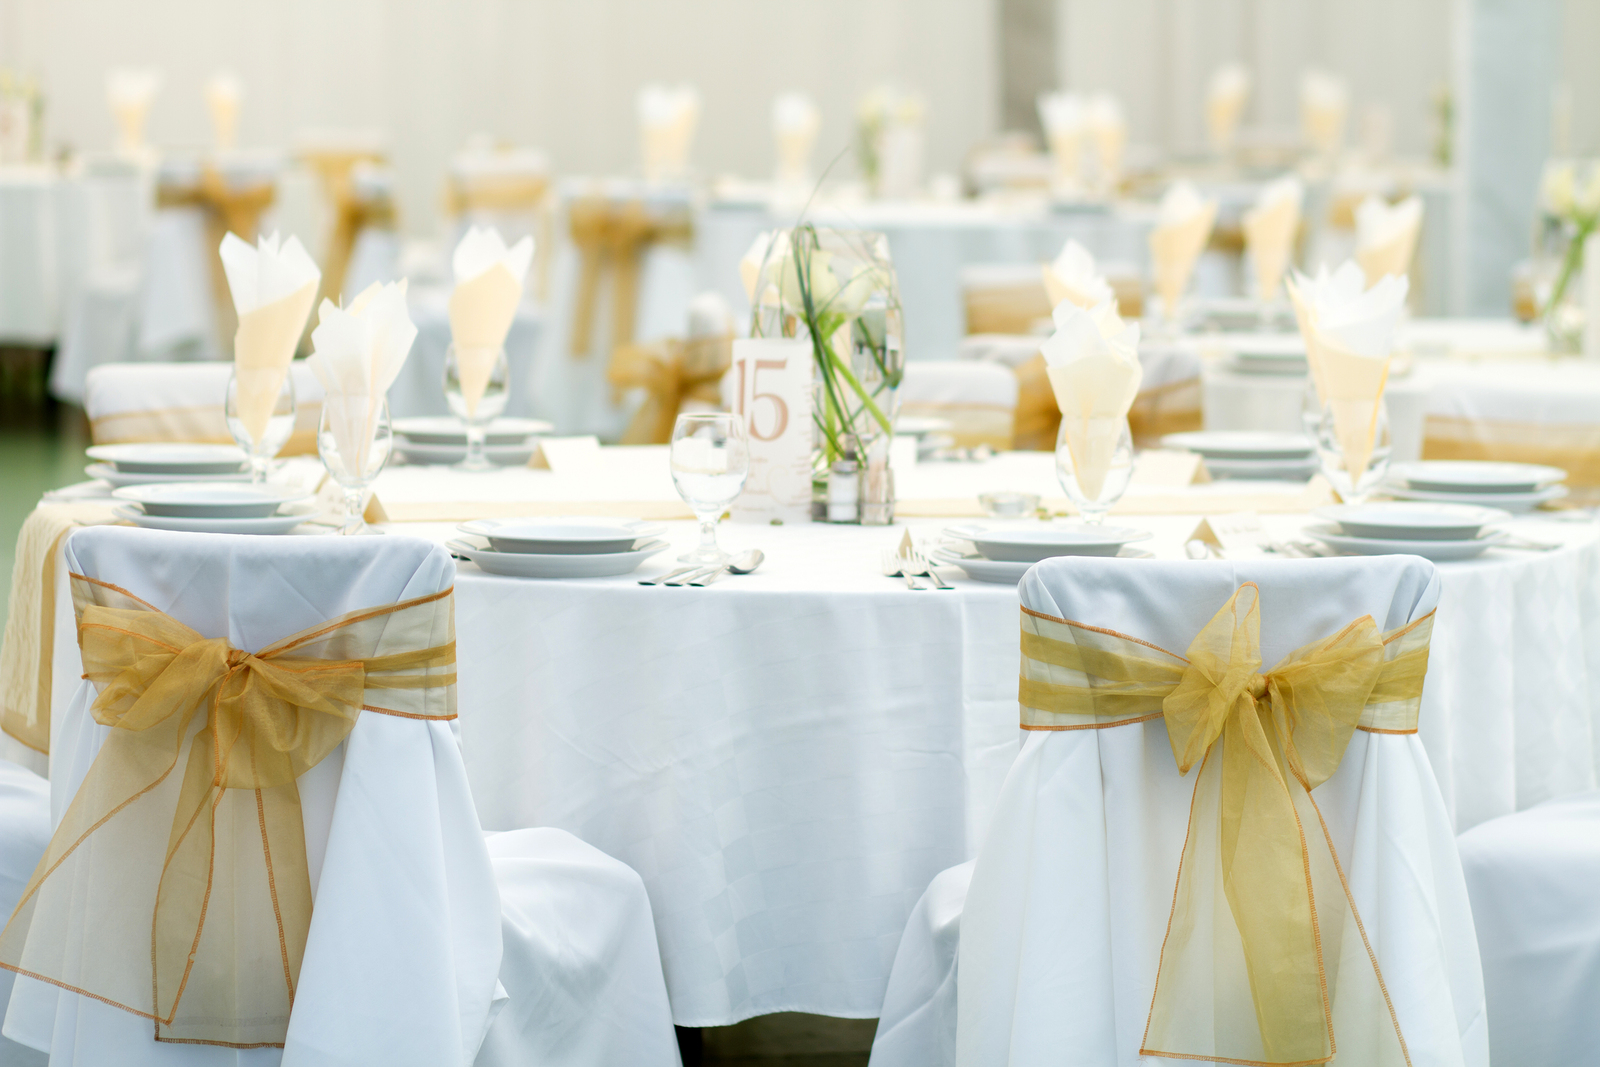 Restaurant or Catering Center with Chairs and Items for Storage